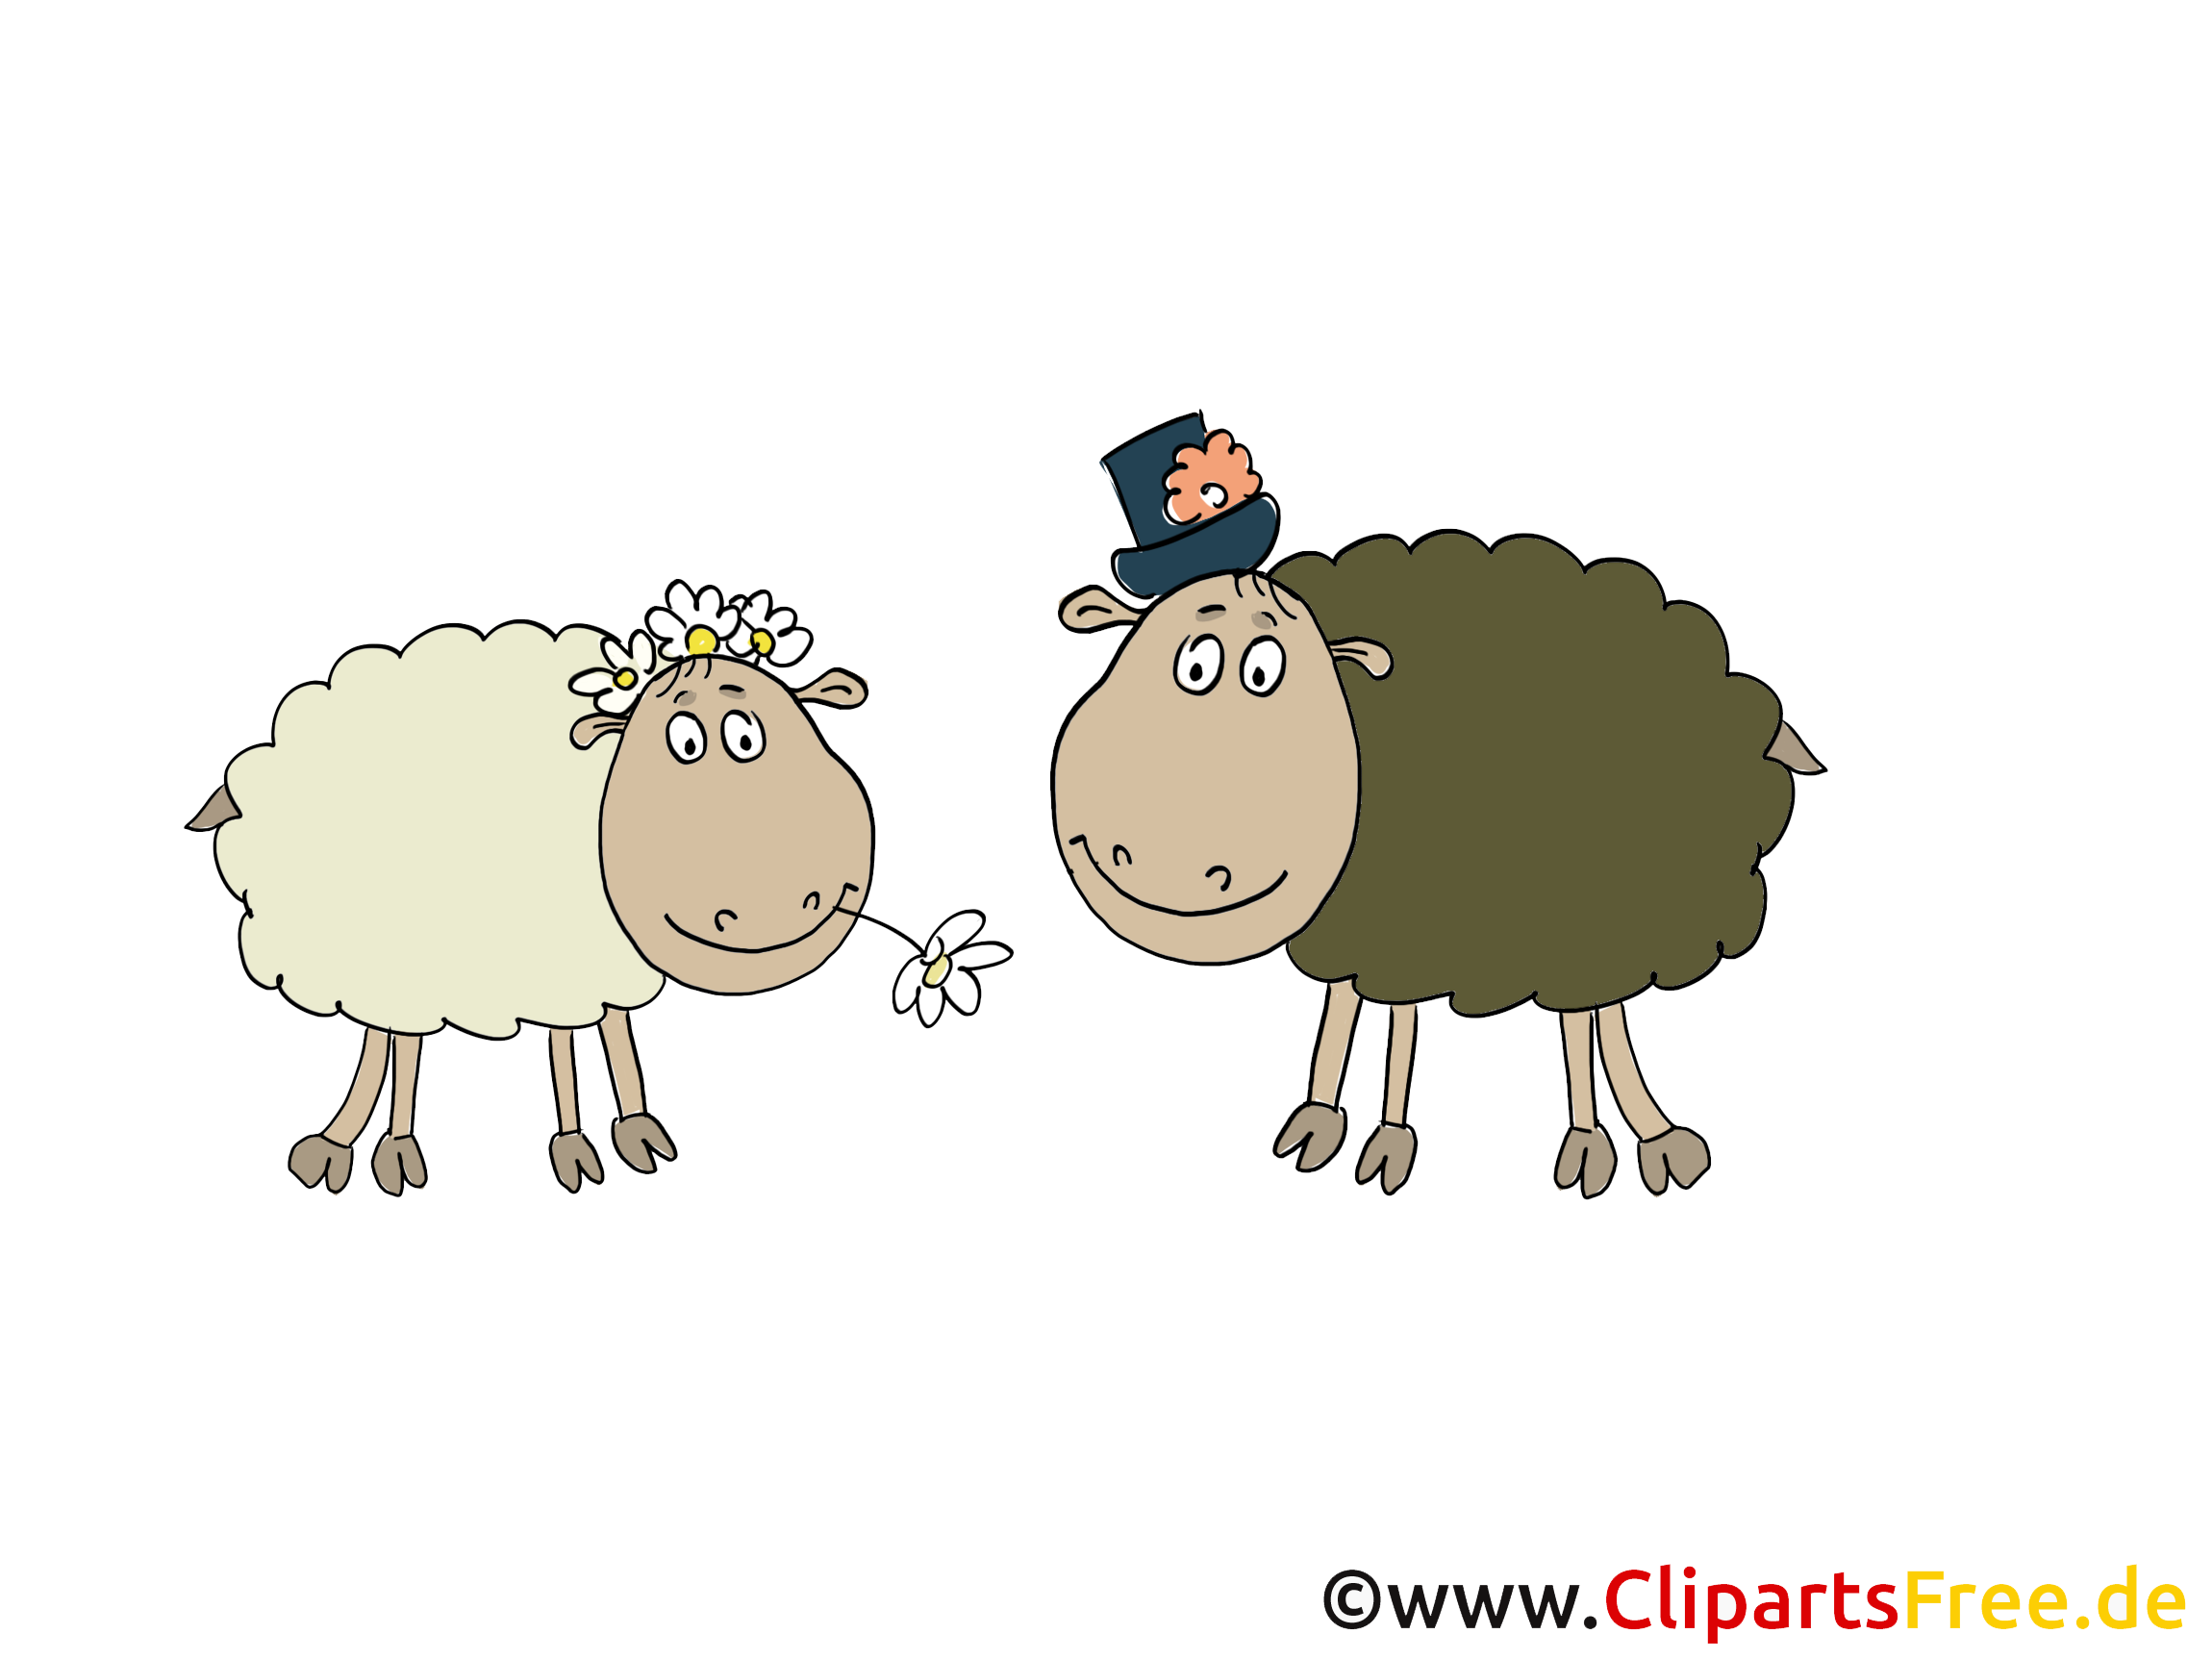 Moutons ferme illustration à télécharger gratuite